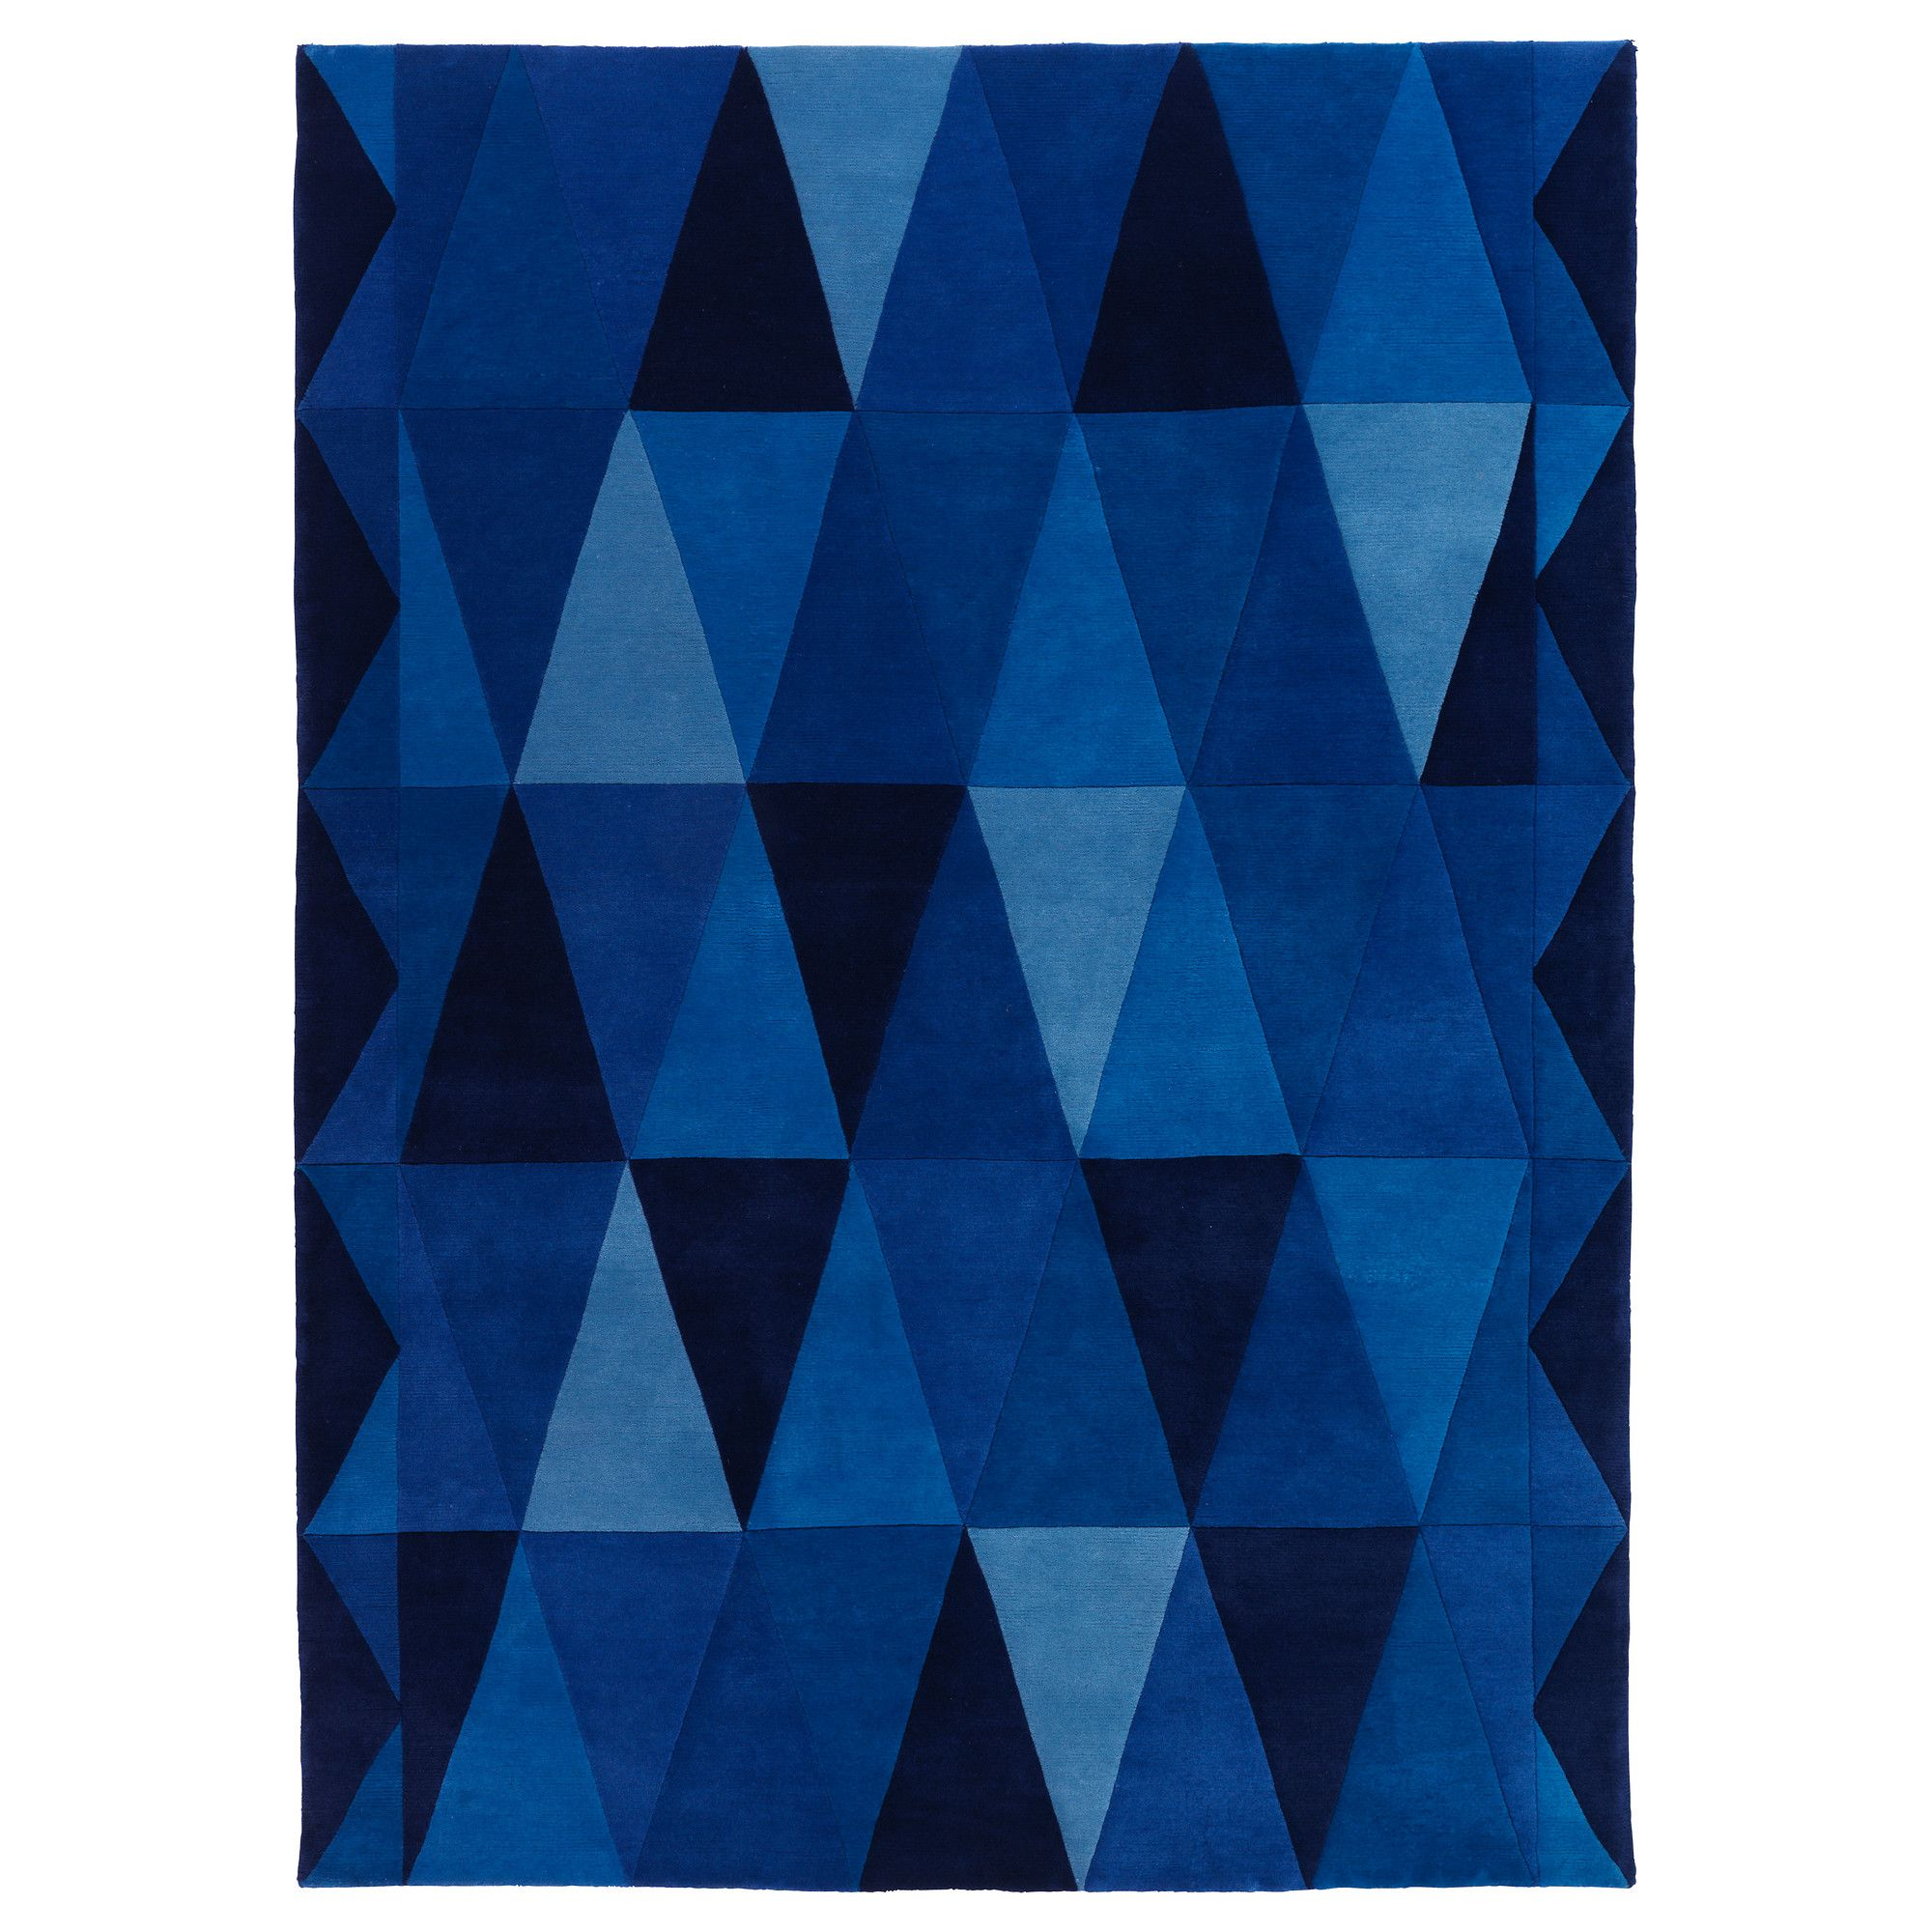 Ikea Teppich Triangle I Want This For My Blue Room Ikea Stockholm Triangel Rug